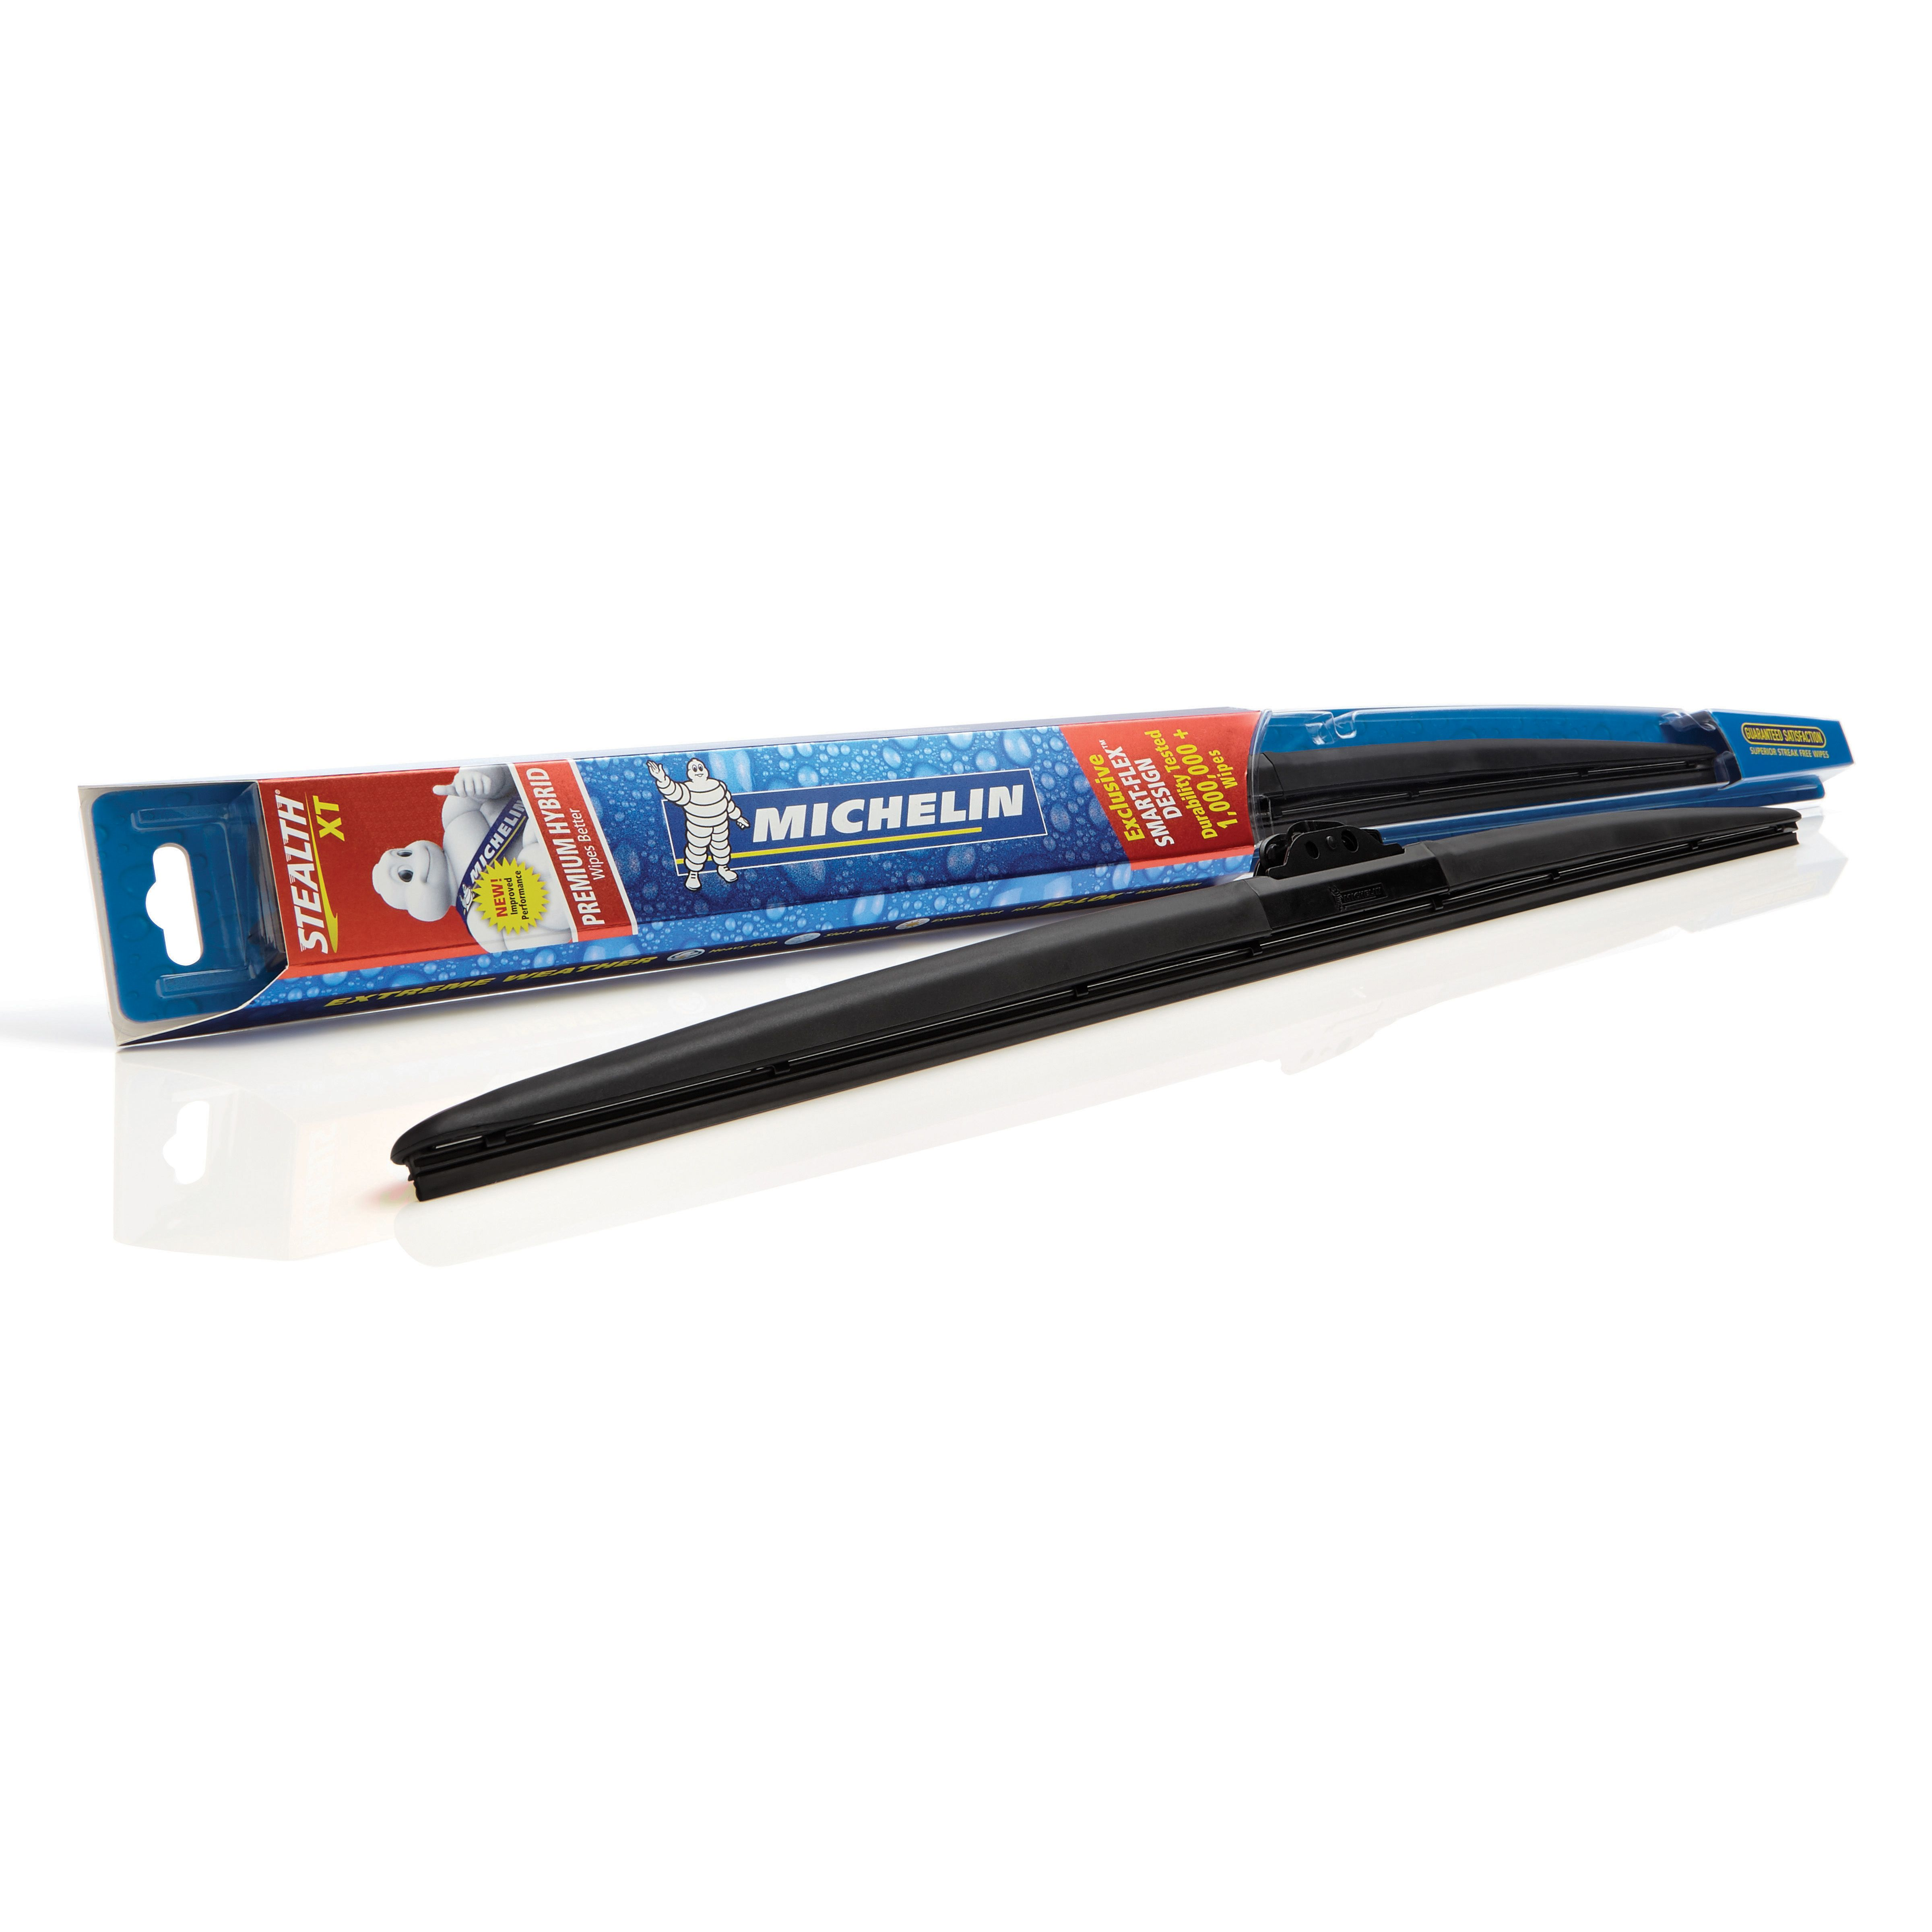 Michelin High Performance Wiper Blade 18